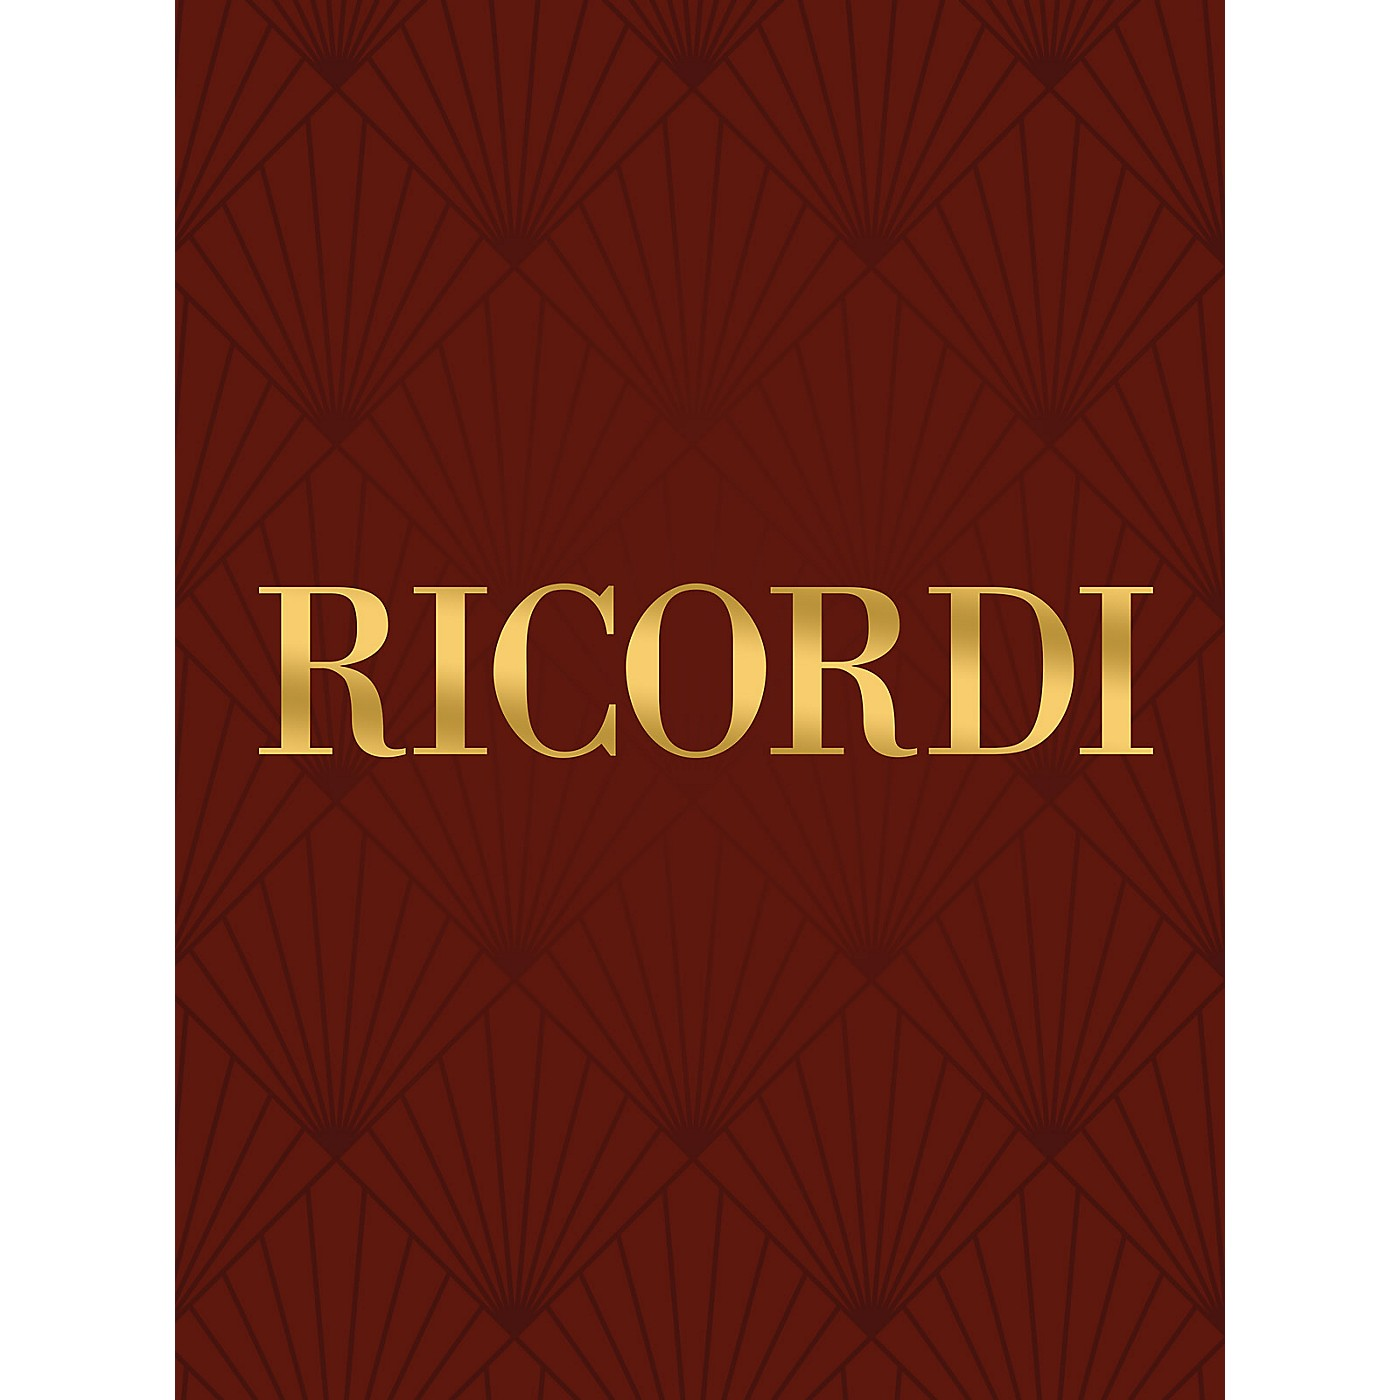 Ricordi Confitebor tibi Domine RV596 Study Score Series Composed by Antonio Vivaldi Edited by Michael Talbot thumbnail